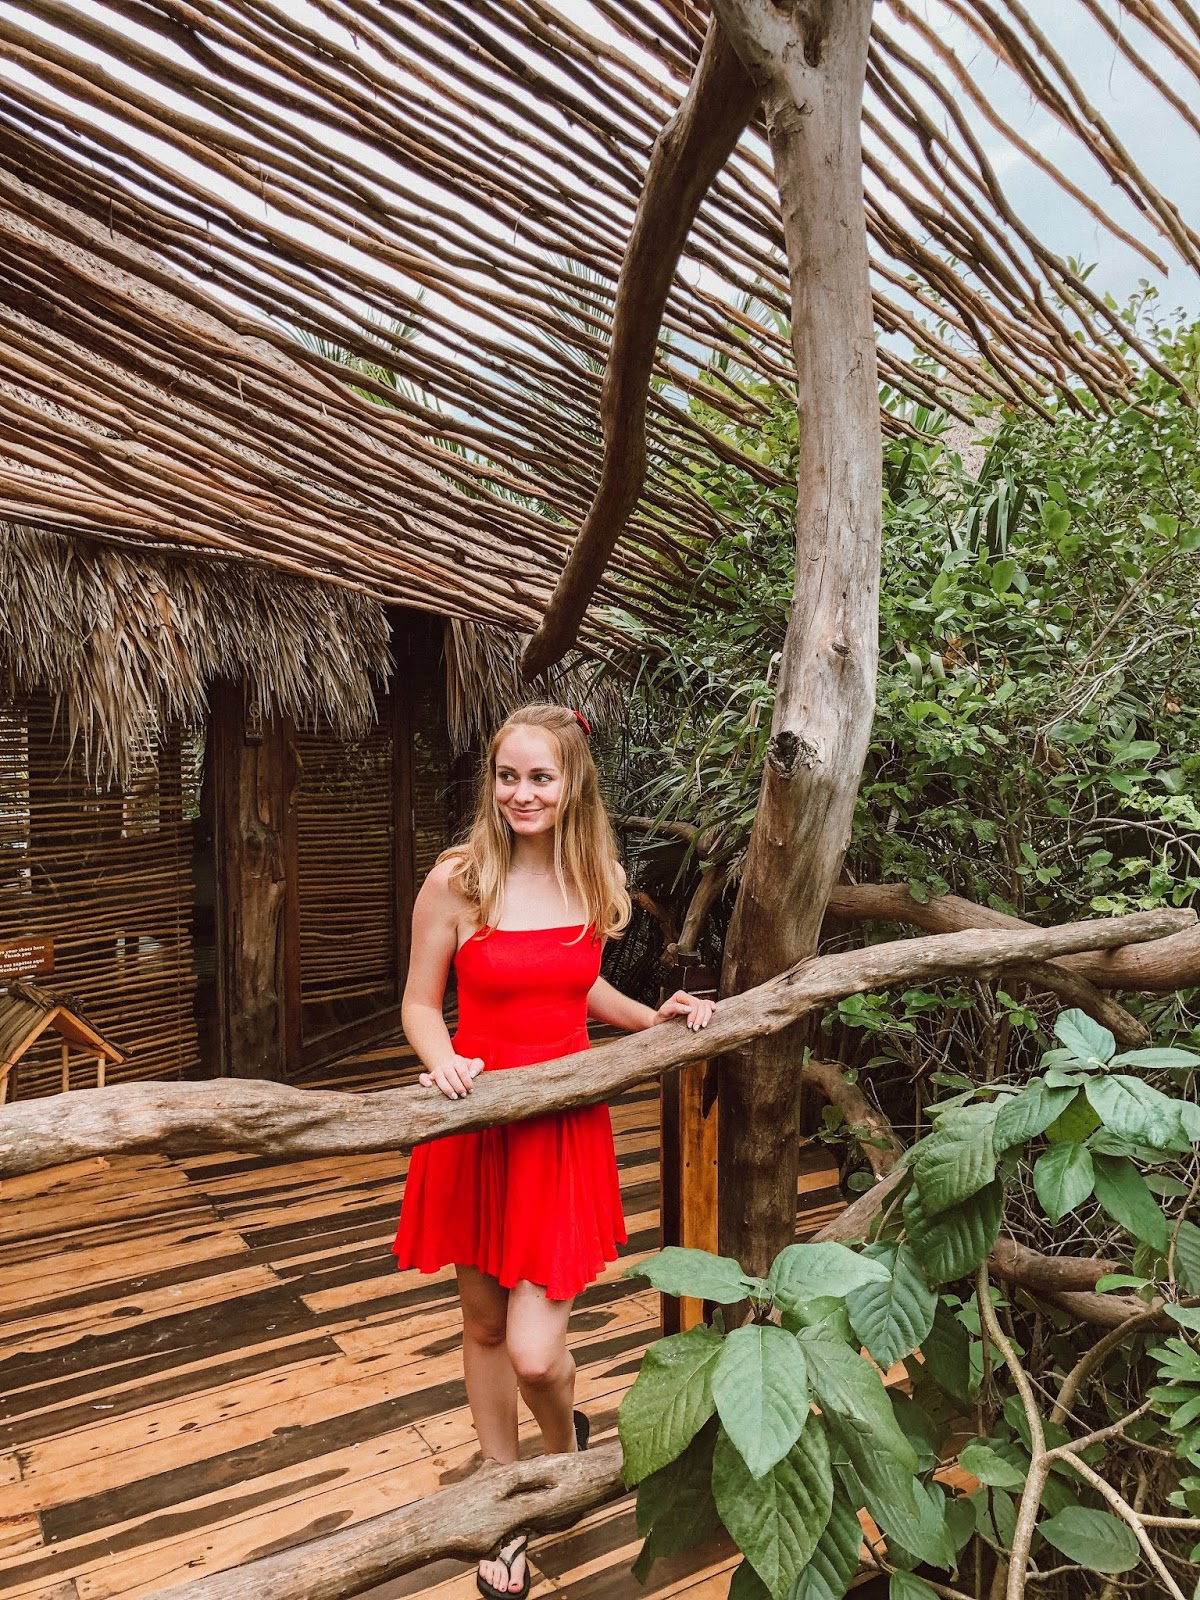 Tulum-Mexico-Travel-Guide-2019-Azulik-Treehouse-Resort